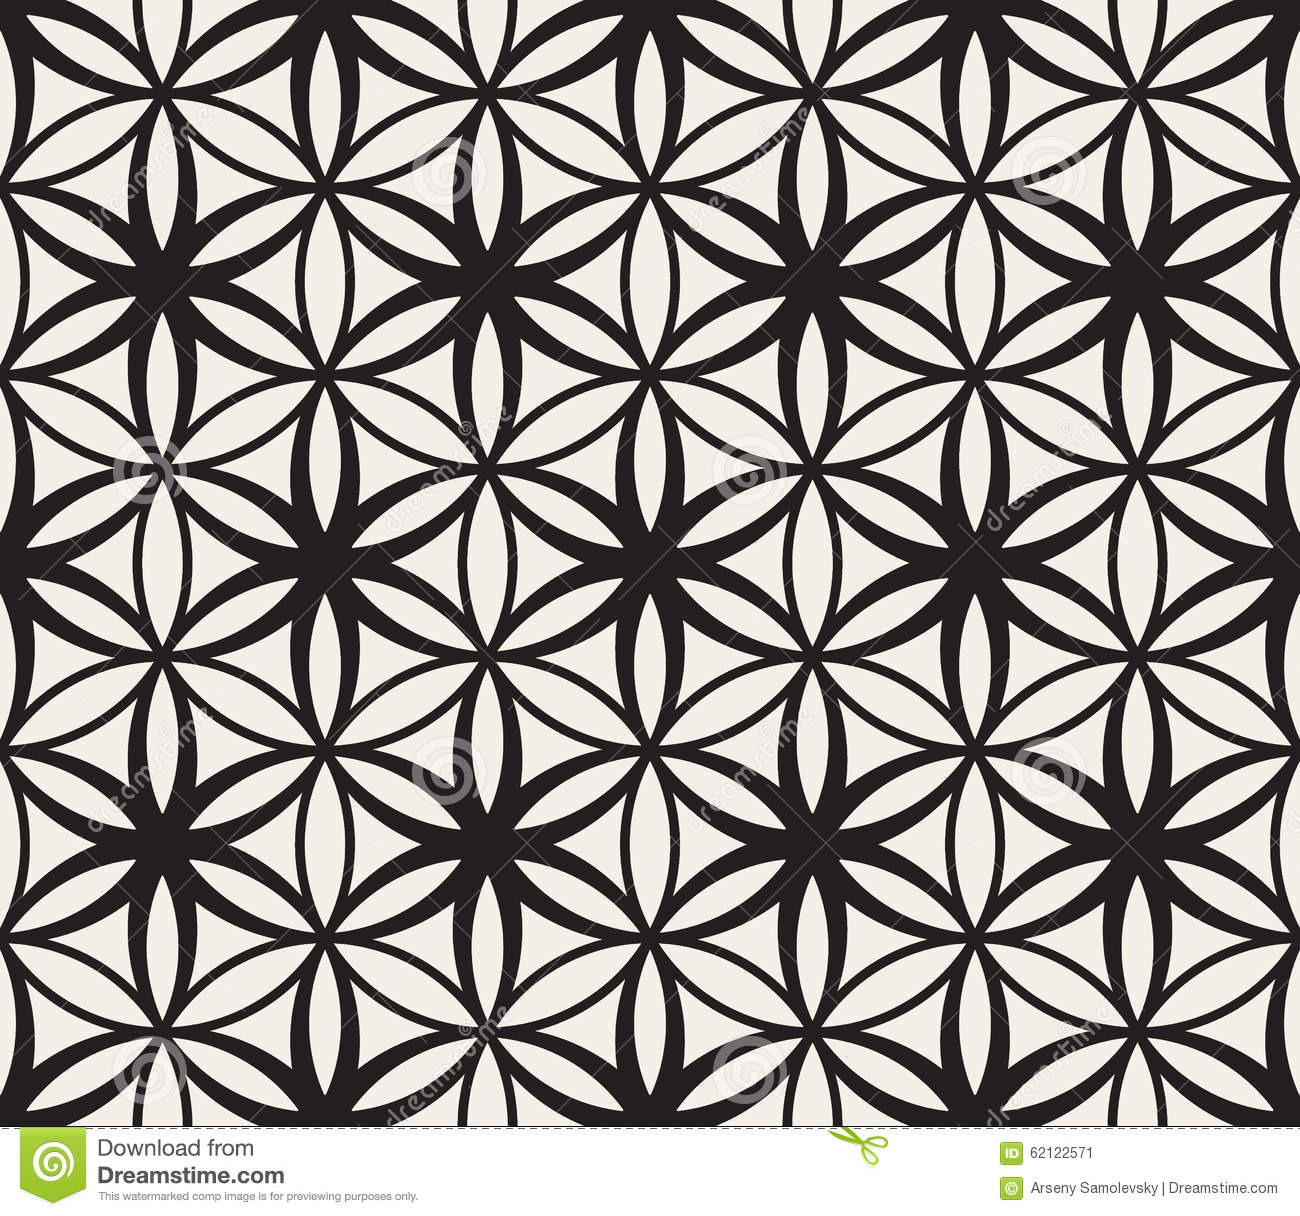 abstract background black flower geometry life pattern .